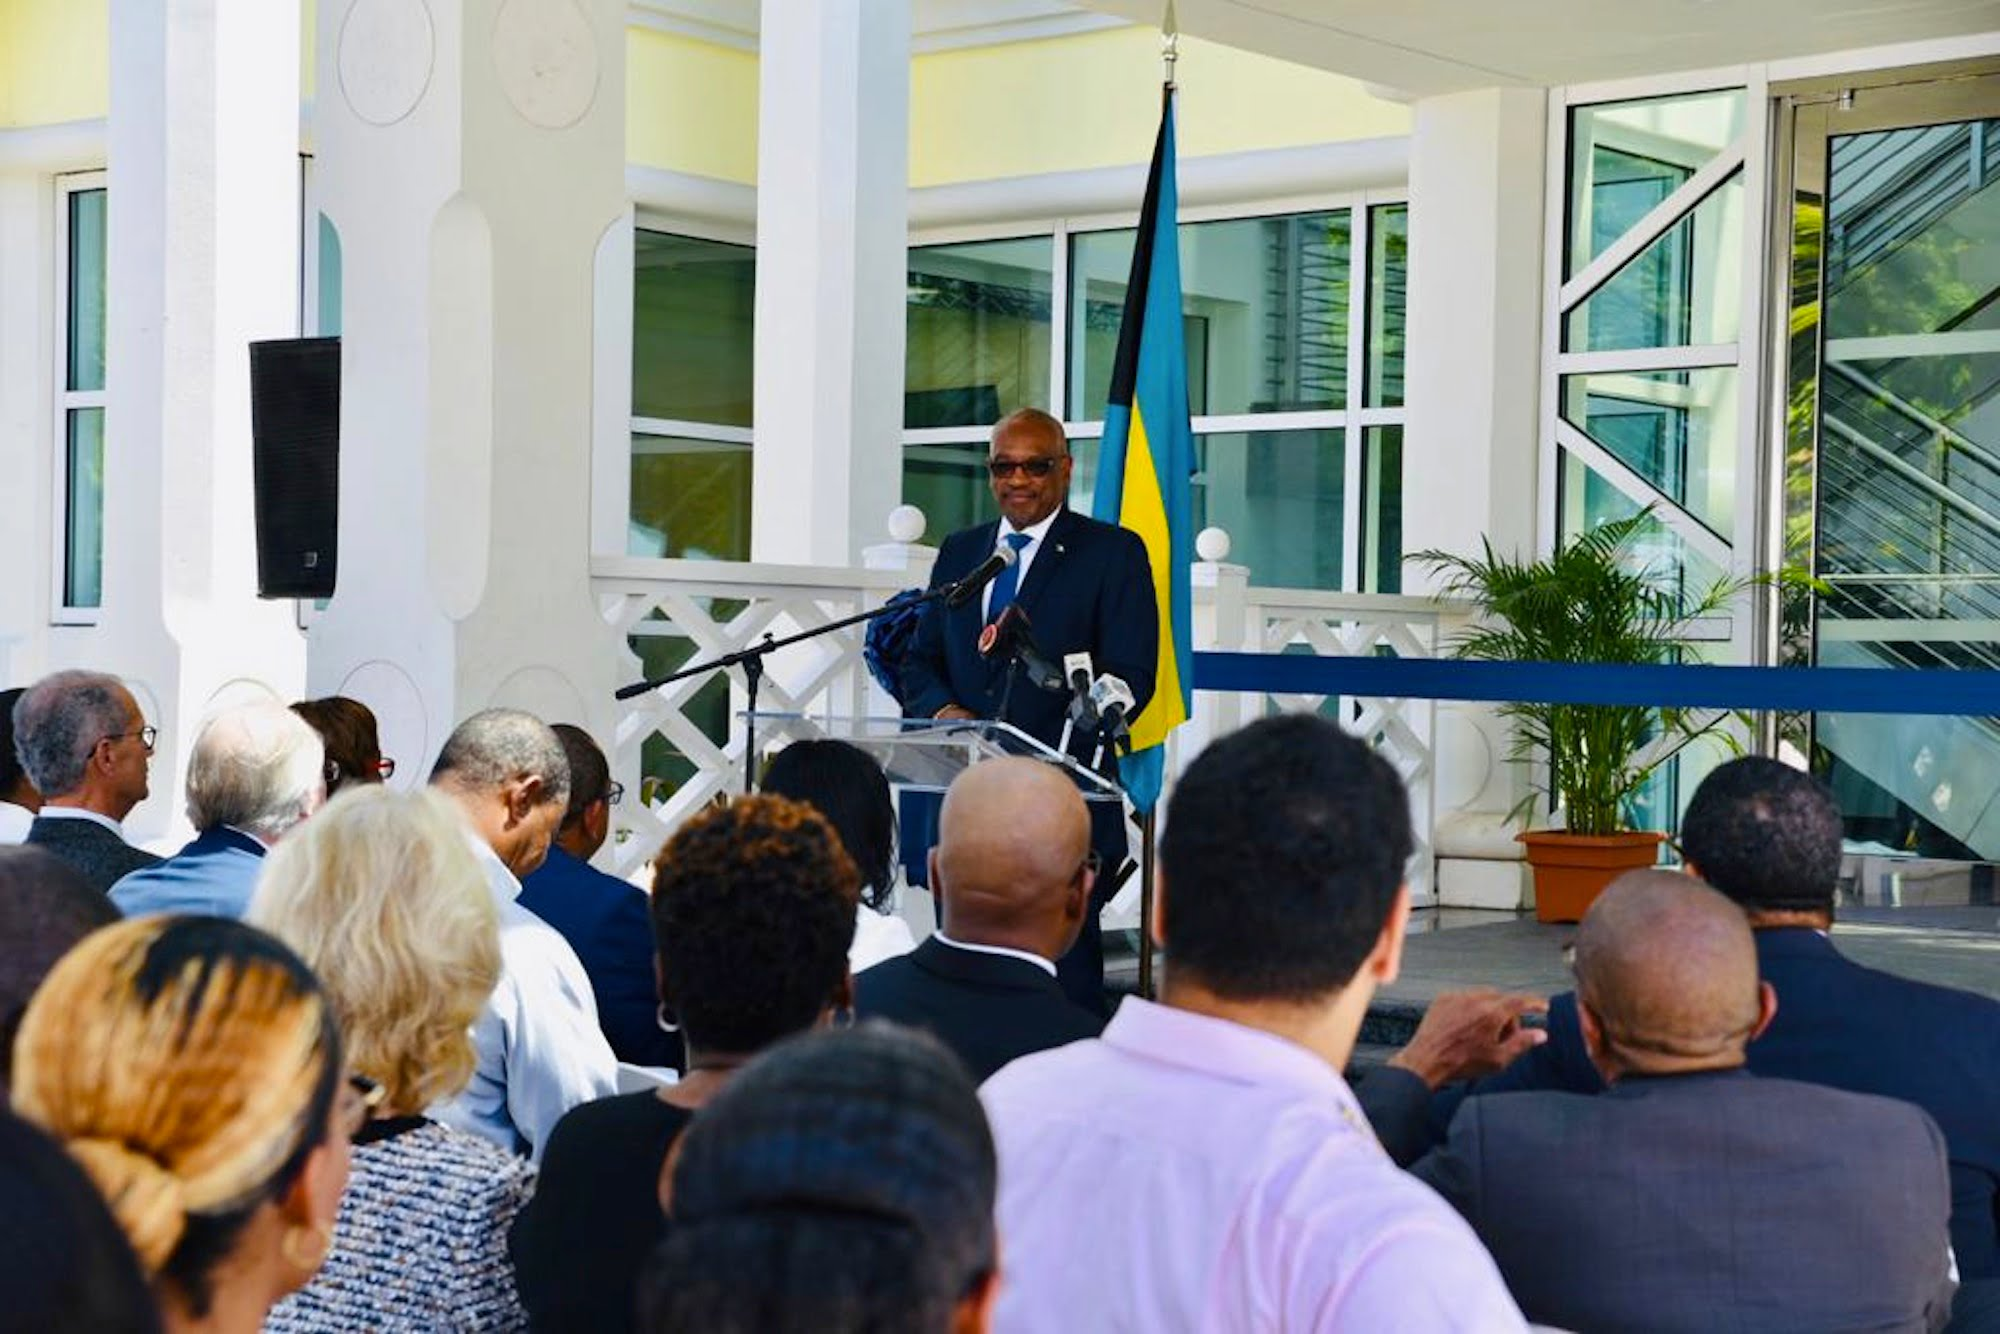 PM officially opens Poinciana House Corporate Centre